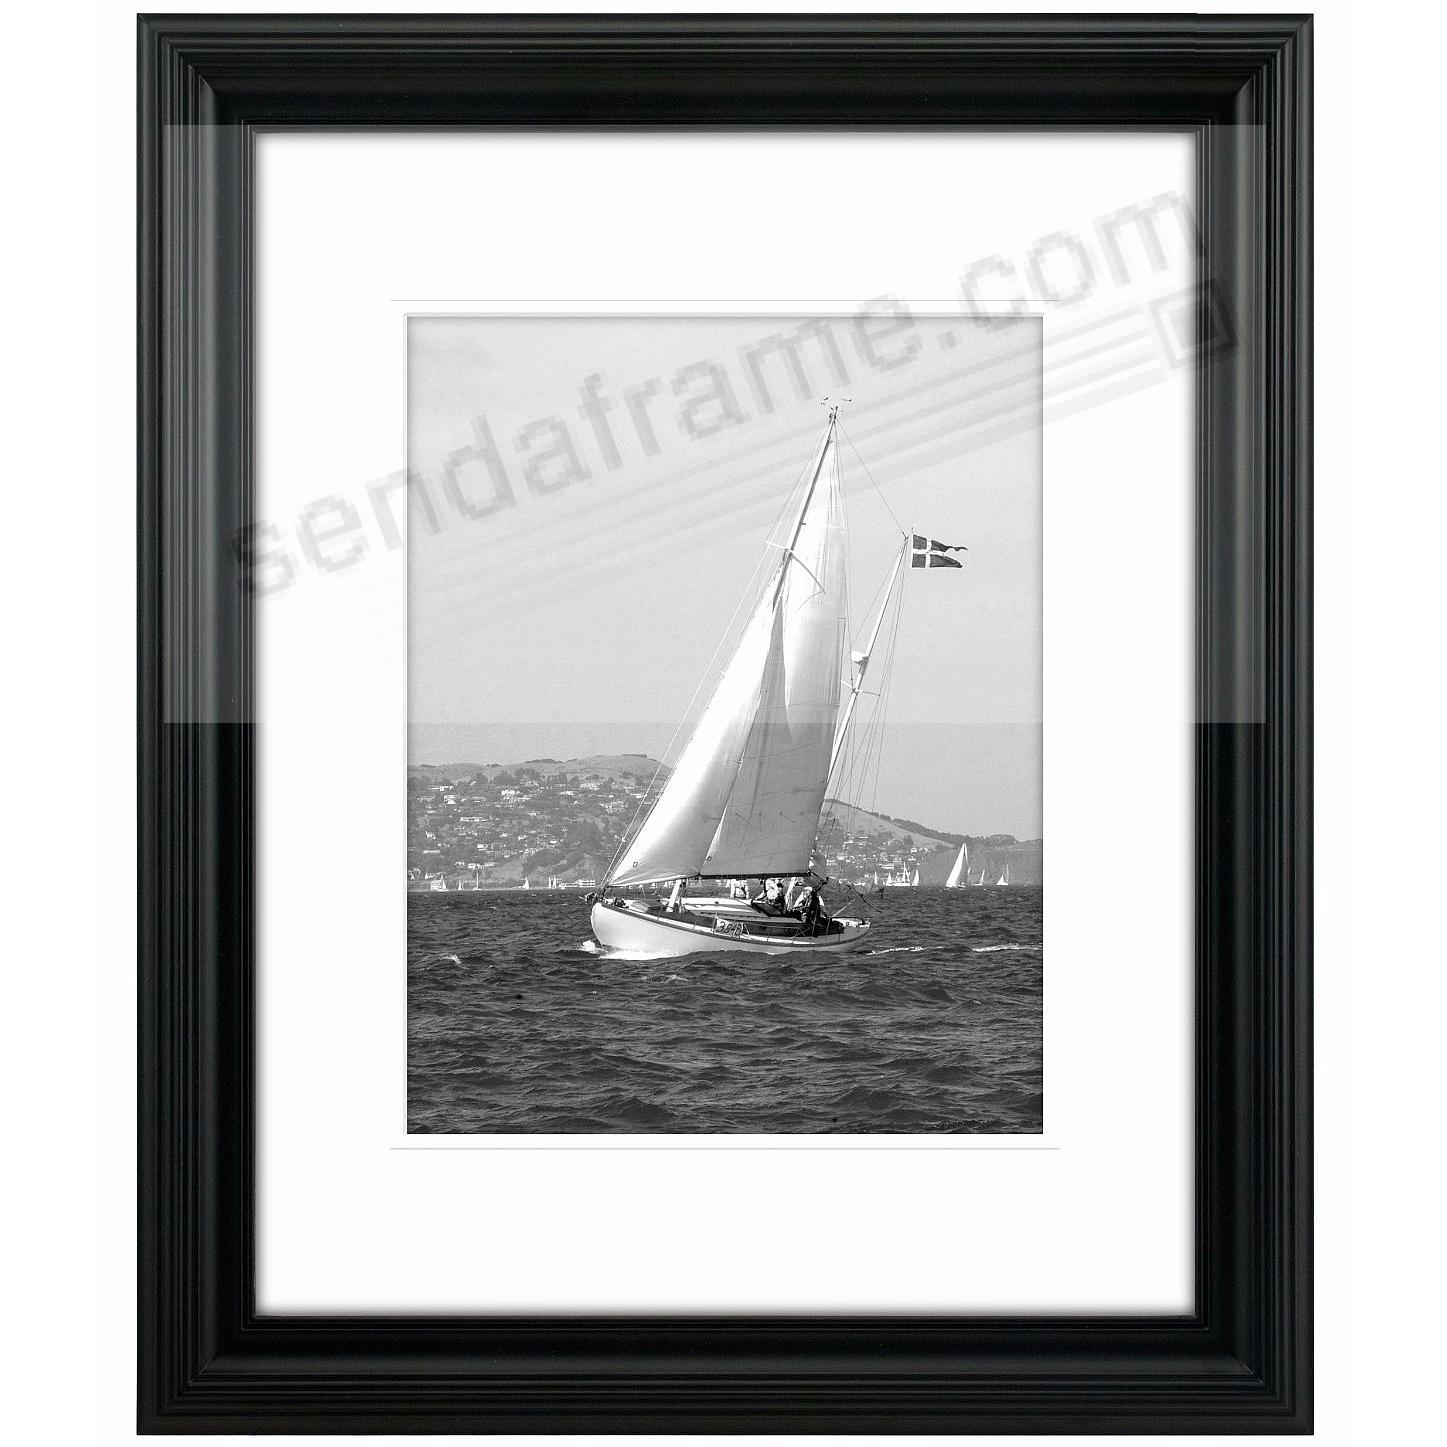 black portrait matted 16x2011x14 stepped frame by malden design